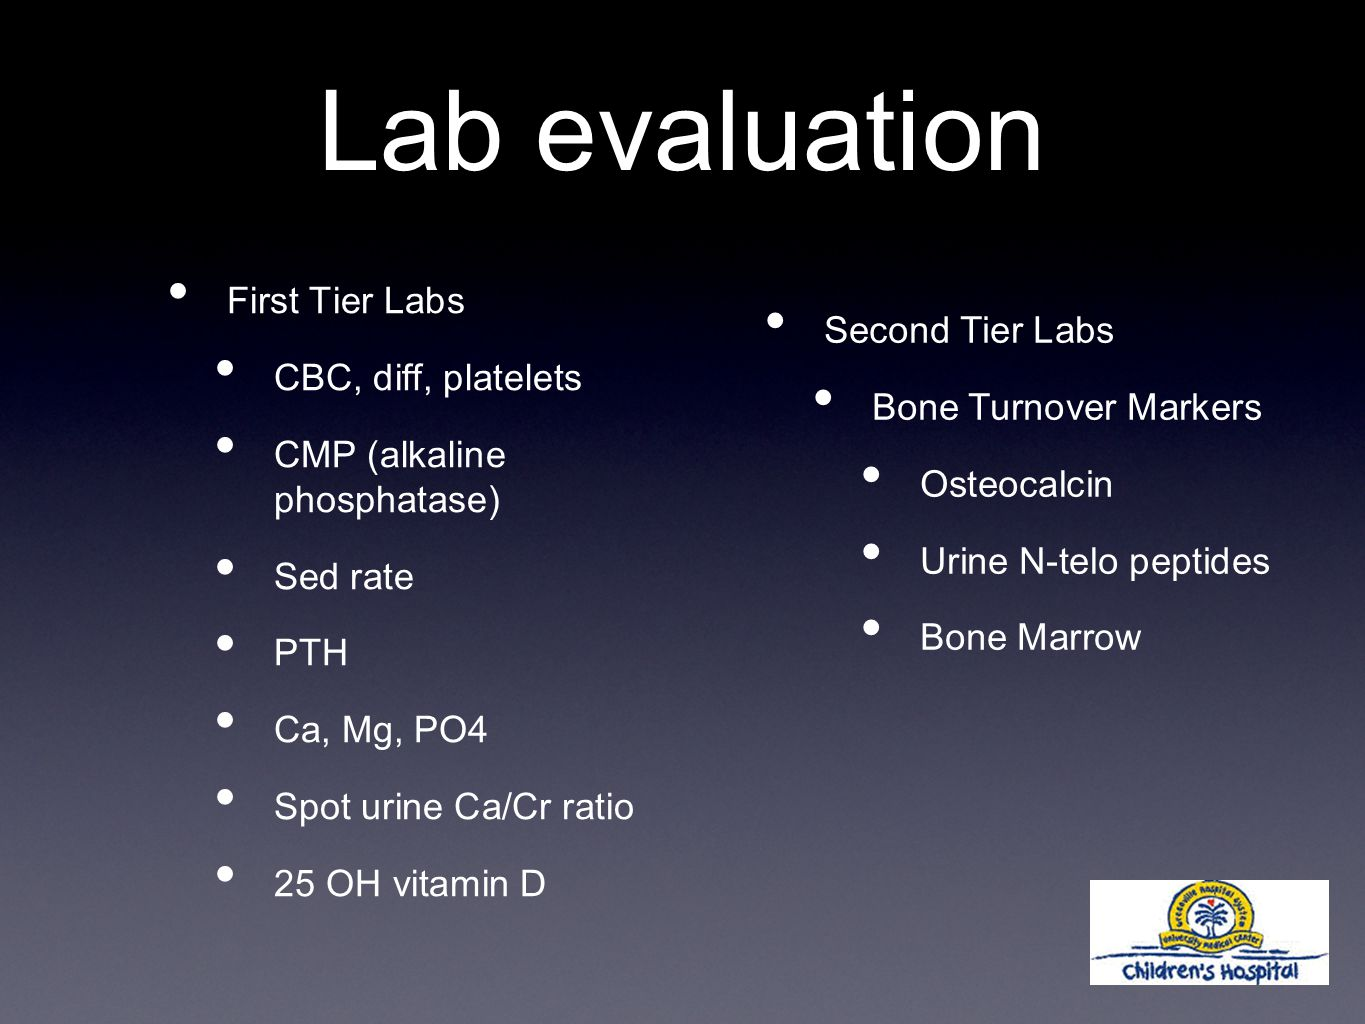 Lab evaluation First Tier Labs CBC, diff, platelets CMP (alkaline phosphatase) Sed rate PTH Ca, Mg, PO4 Spot urine Ca/Cr ratio 25 OH vitamin D Second Tier Labs Bone Turnover Markers Osteocalcin Urine N-telo peptides Bone Marrow